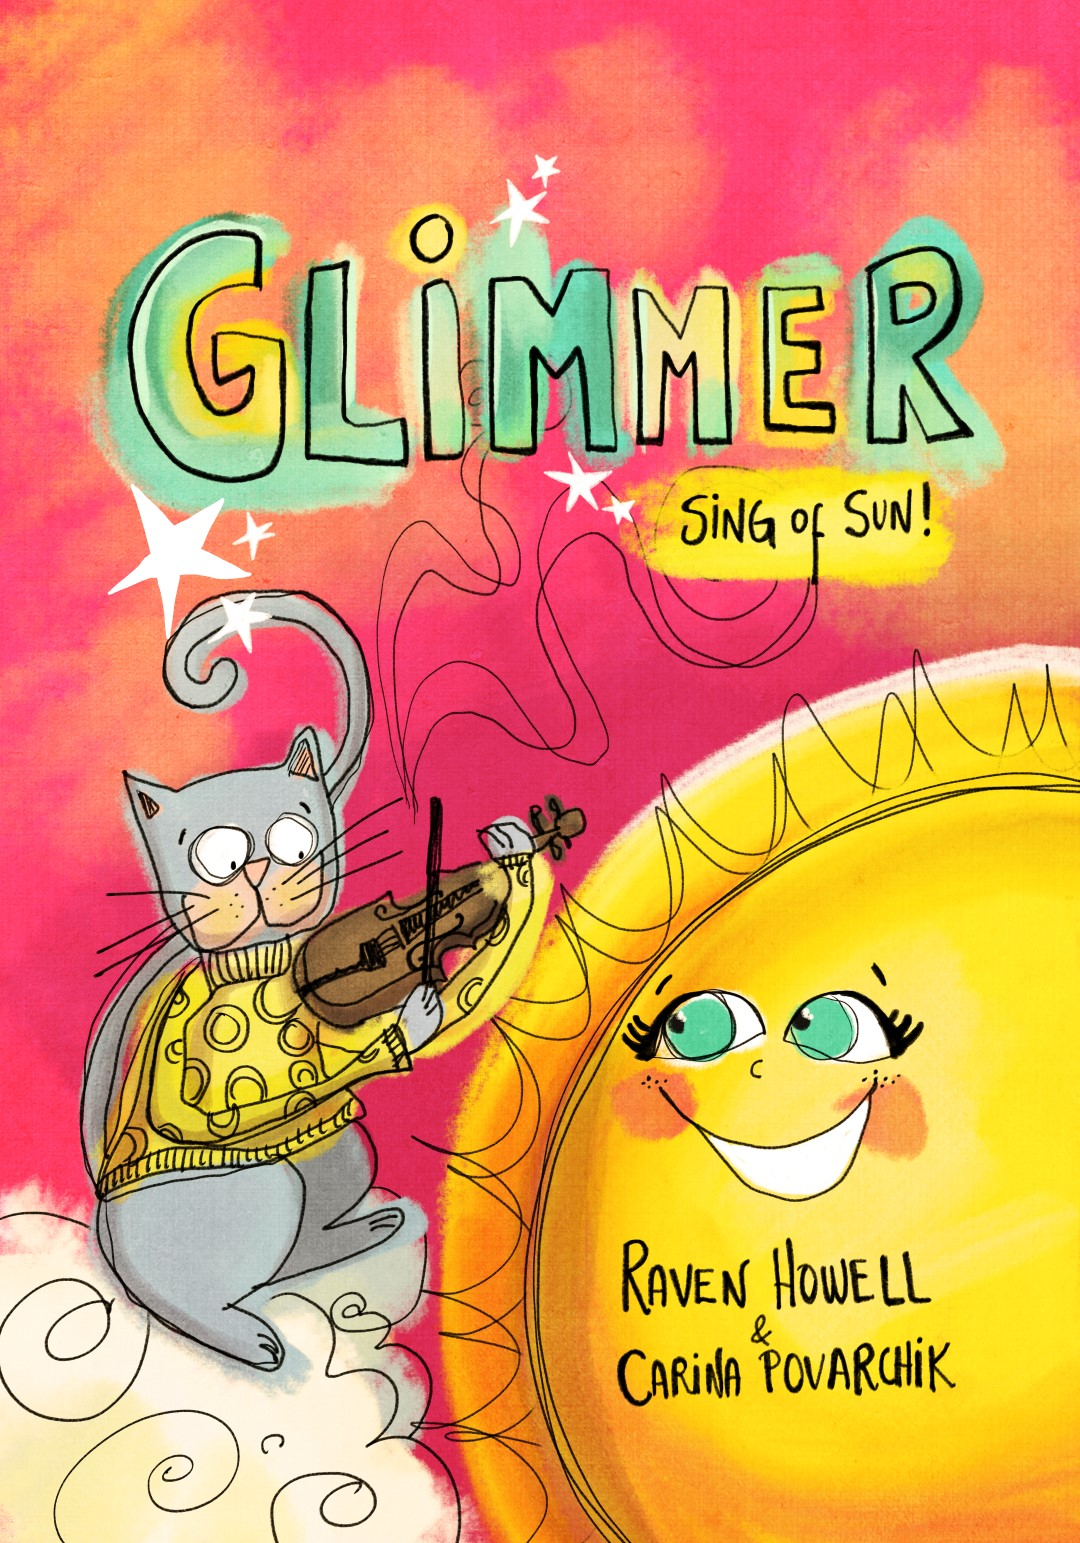 """- Written by the award winning author Raven Howell - Illustrated by Carina Povarchik.Published by Clear Fork Media Group LLC.It's the sister and sequel to Shimmer: Songs of Night.Publication Date: June 11, 2019.SynopsisBurst to bright adventures where vivid colors sprout, the sun paints the sky, and days are strawberry-scented. Creating a landscape of light, this picture poetry book transforms the ordinary in life to glimmering significance. Written and illustrated by collaborating team Raven Howell and Carina Povarchik, this collection is a joyful and imaginative companion book to Howell and Povarchik's Shimmer, Songs of Night.""""Glimmer is magical; a spellbinding, sun-blinding, sparkly celebration of the songs the seasons sing. I love it! It's gorgeous.""""-Liz Brownlee, National Poetry Day Ambassador, author of Apes to Zebras, an A-Z of Shape poems (Bloomsbury), and Be the Change, Poems Exploring Protecting the Planet (Macmillan).""""A charming celebration of the sun's warmth and glow, perfect for sharing and reading aloud.""""- Kirkus Review"""